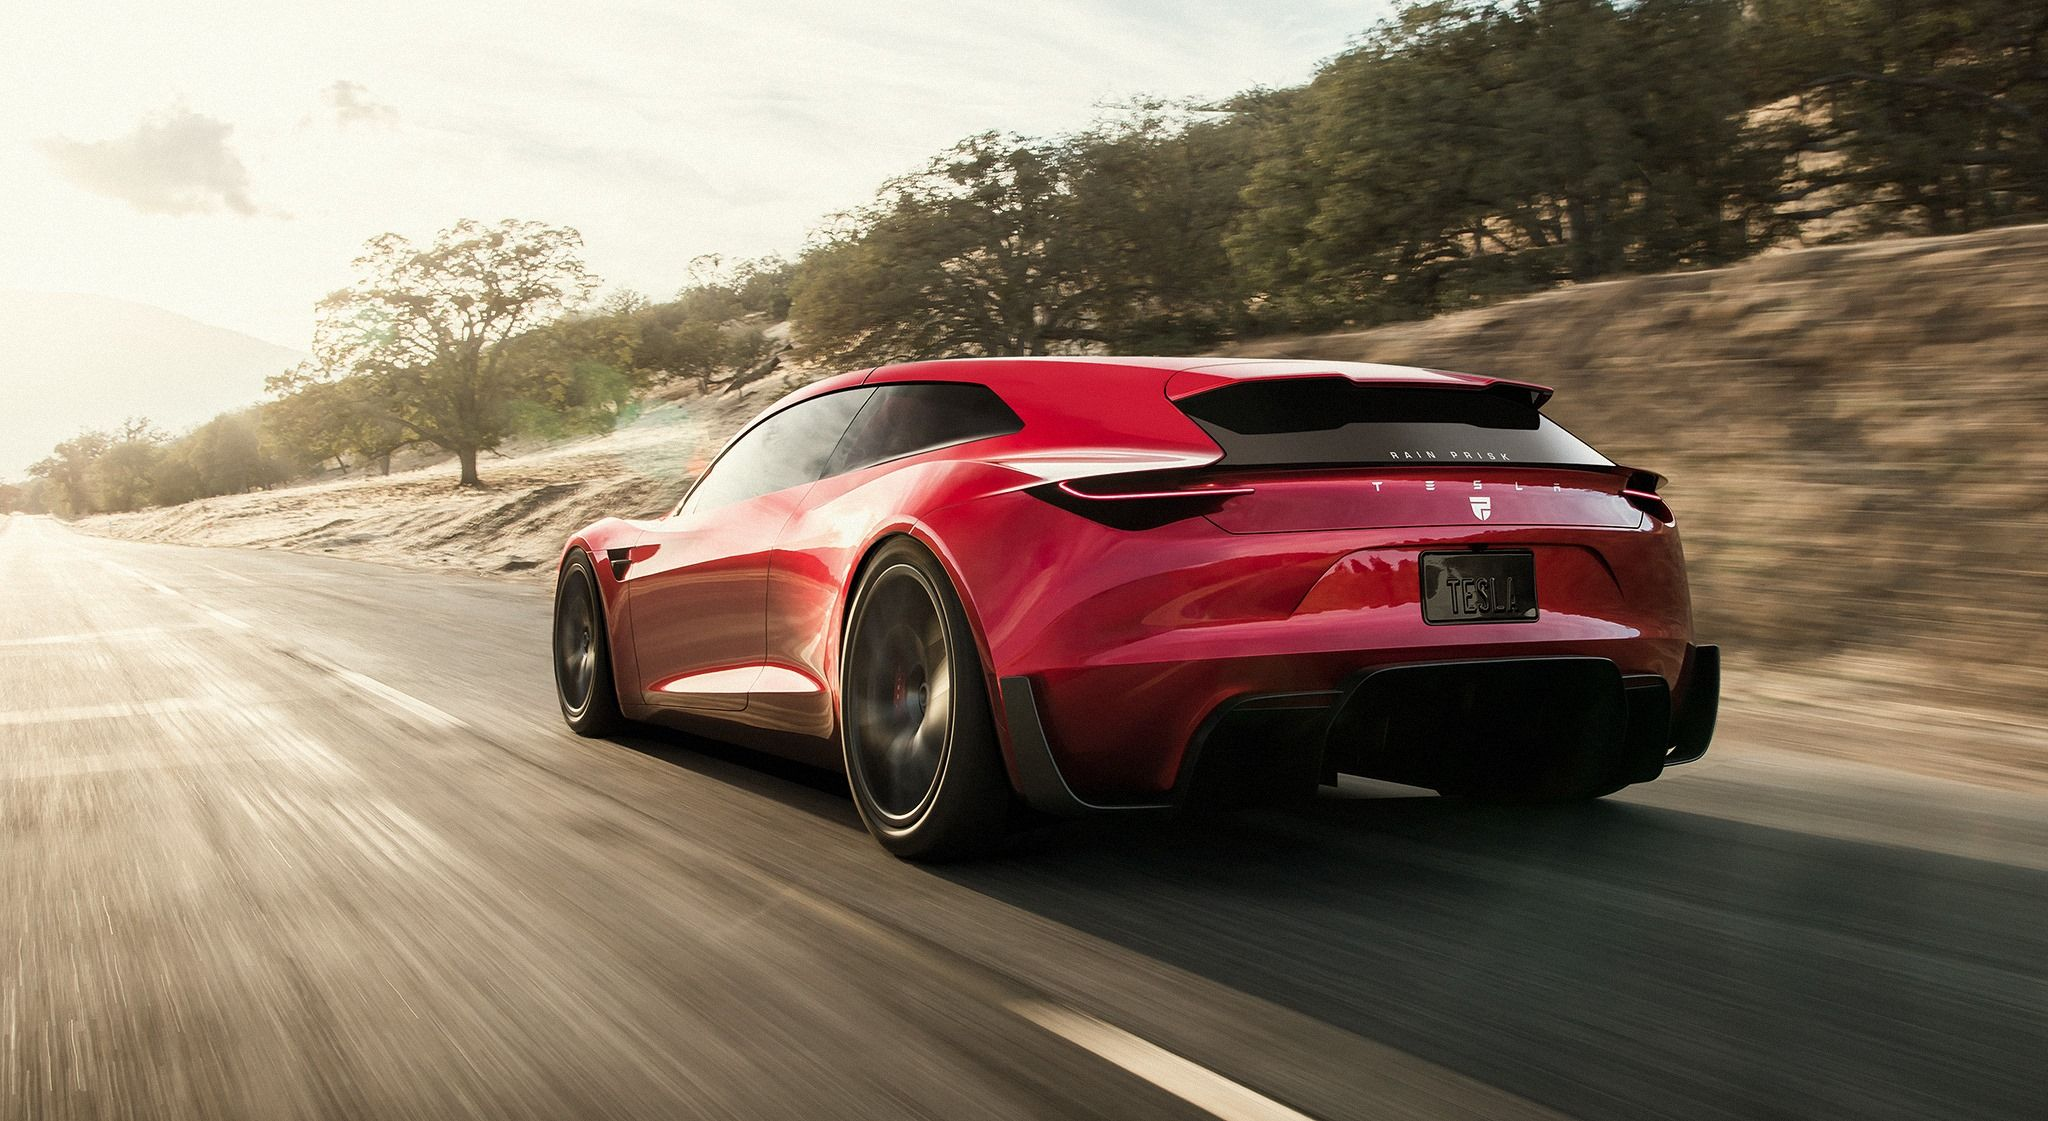 Tesla Shooting Brake Is Awesome Tesla Roadster Tesla Luxury Sports Cars